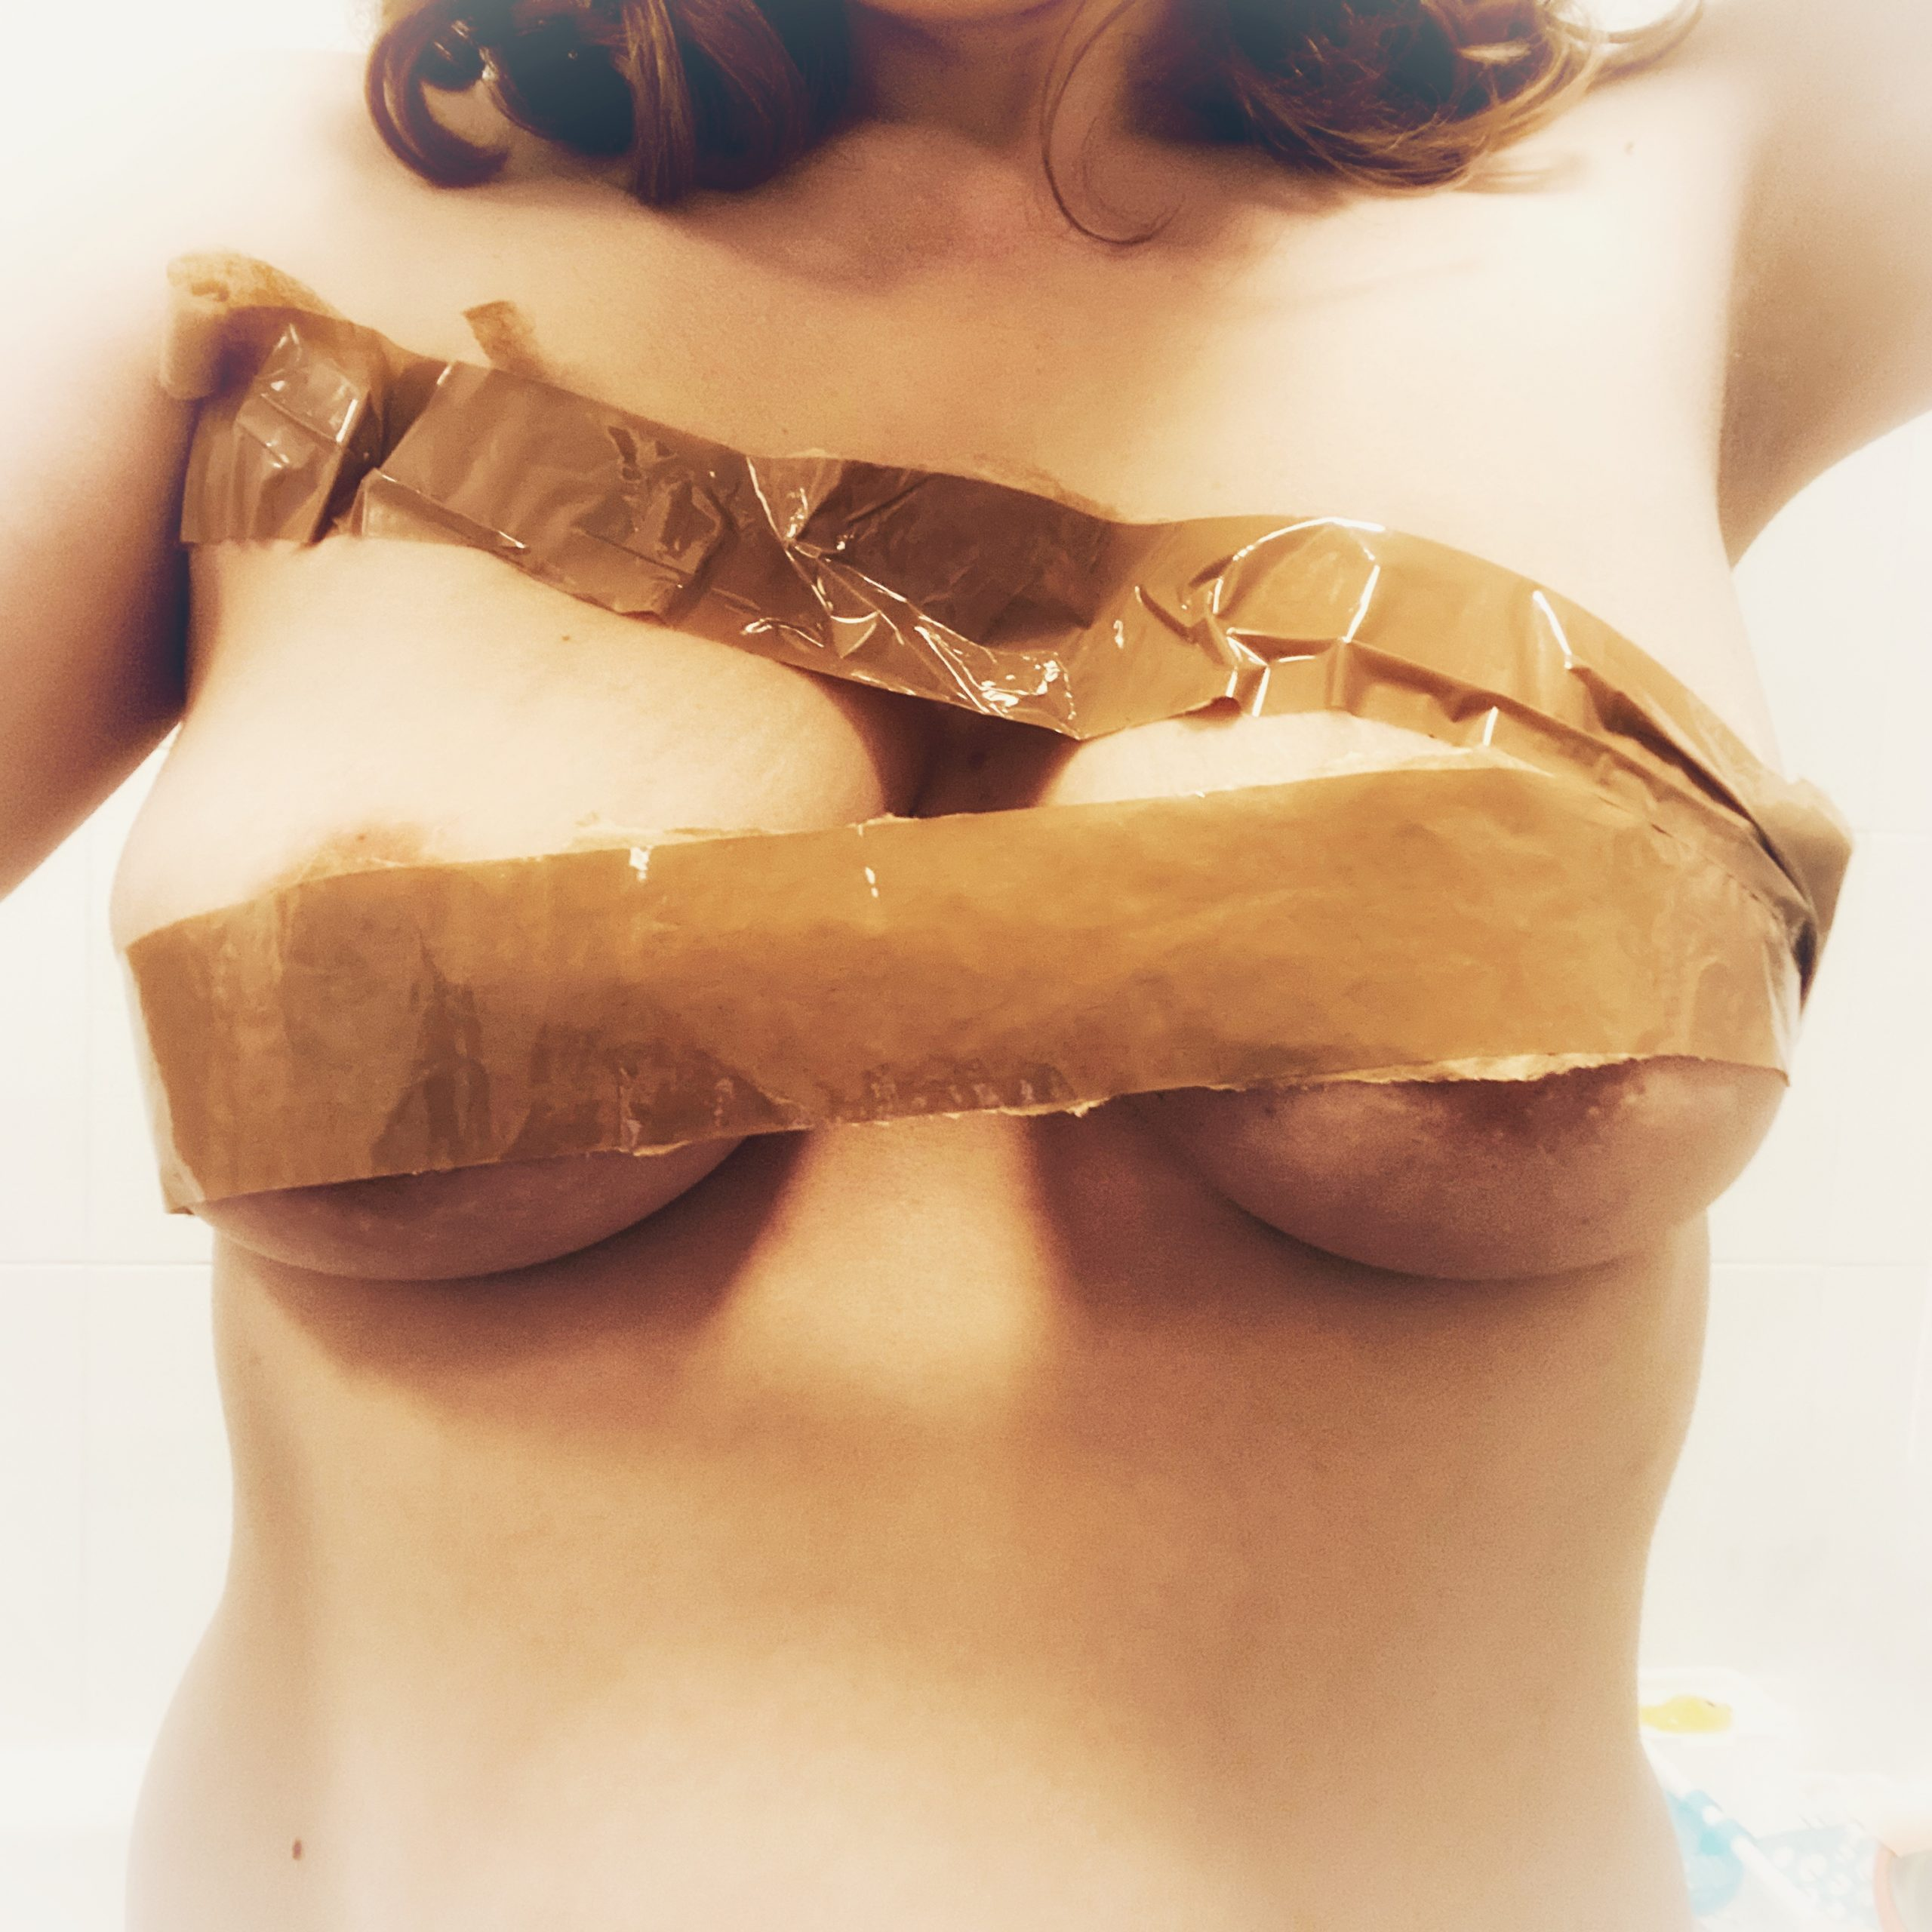 My naked breasts wrapped in parcel tape